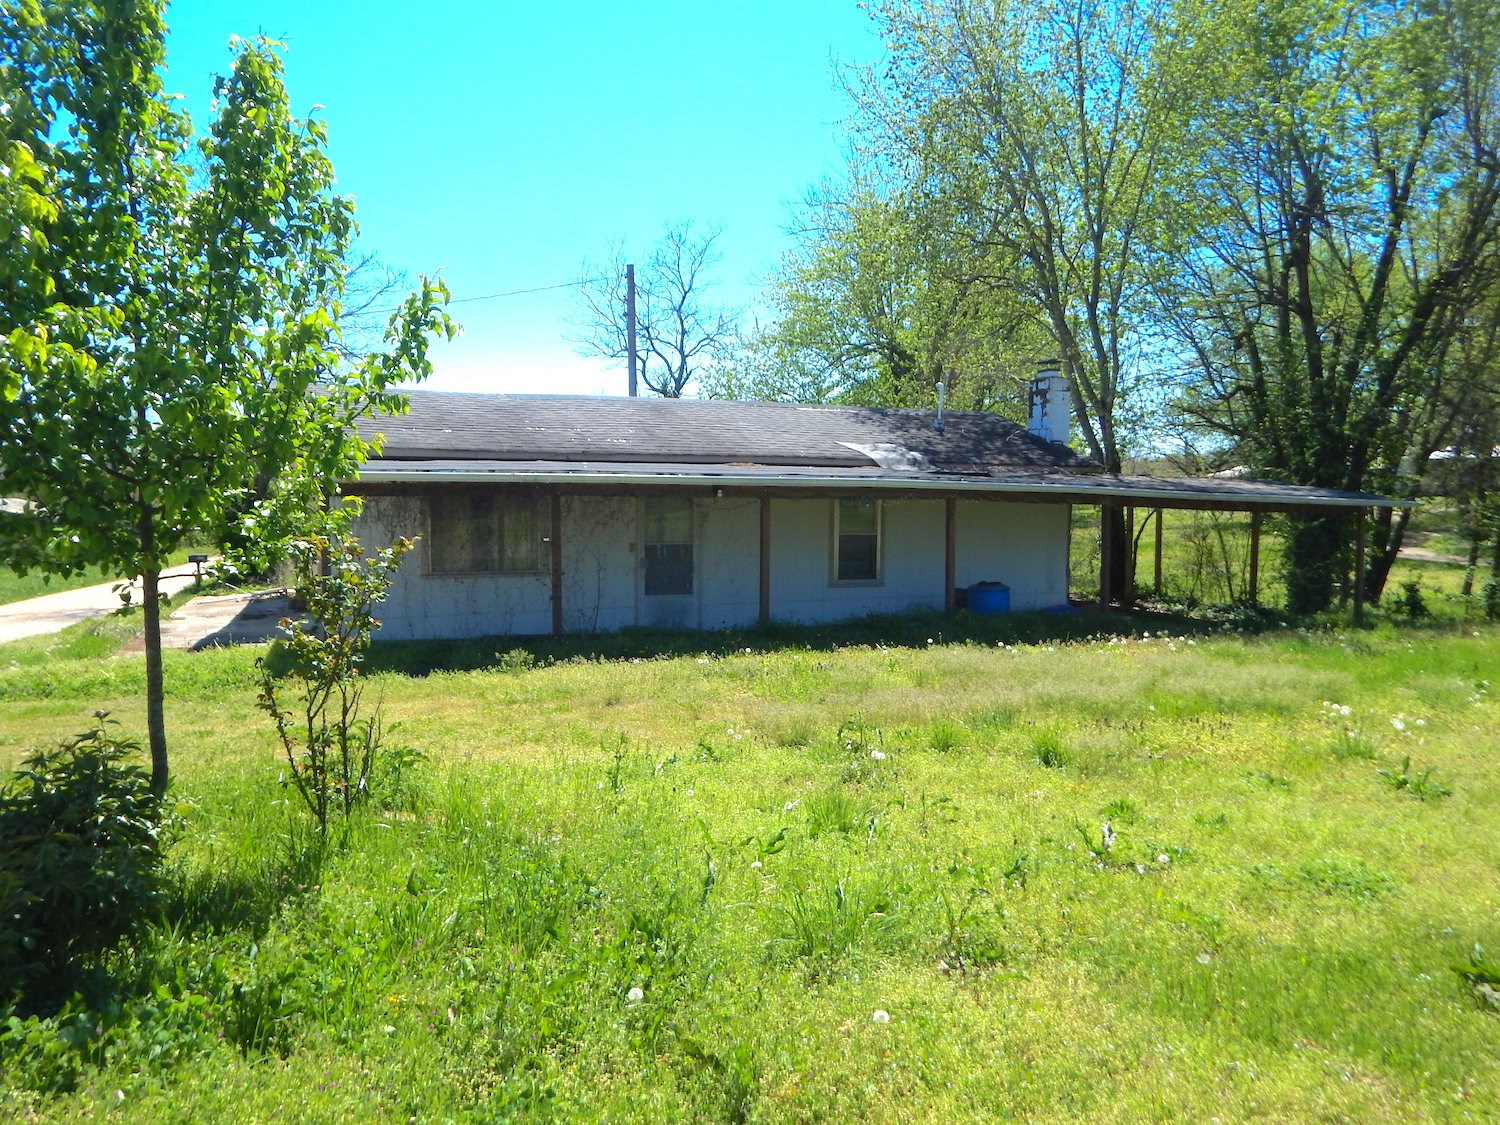 Home for Sale in Myrtle Missouri